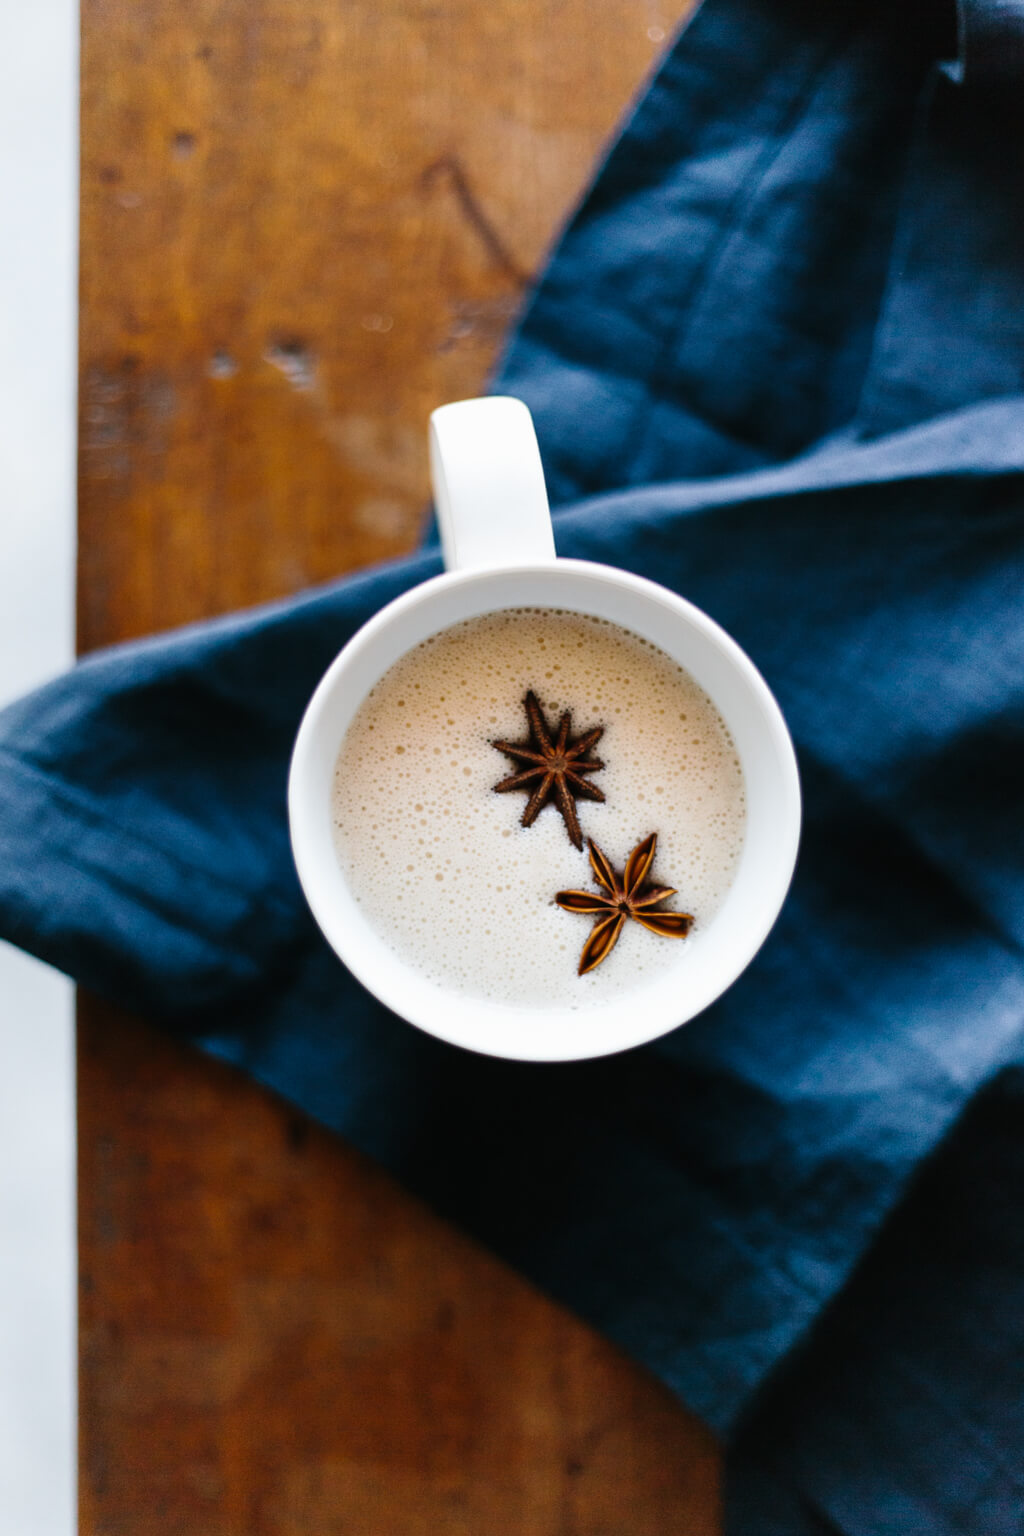 Chai spiced coconut milk made from ginger, turmeric, cinnamon, star anise, vanilla and coconut milk will heat you from the inside out and provide heaps of anti-inflammatory health benefits.